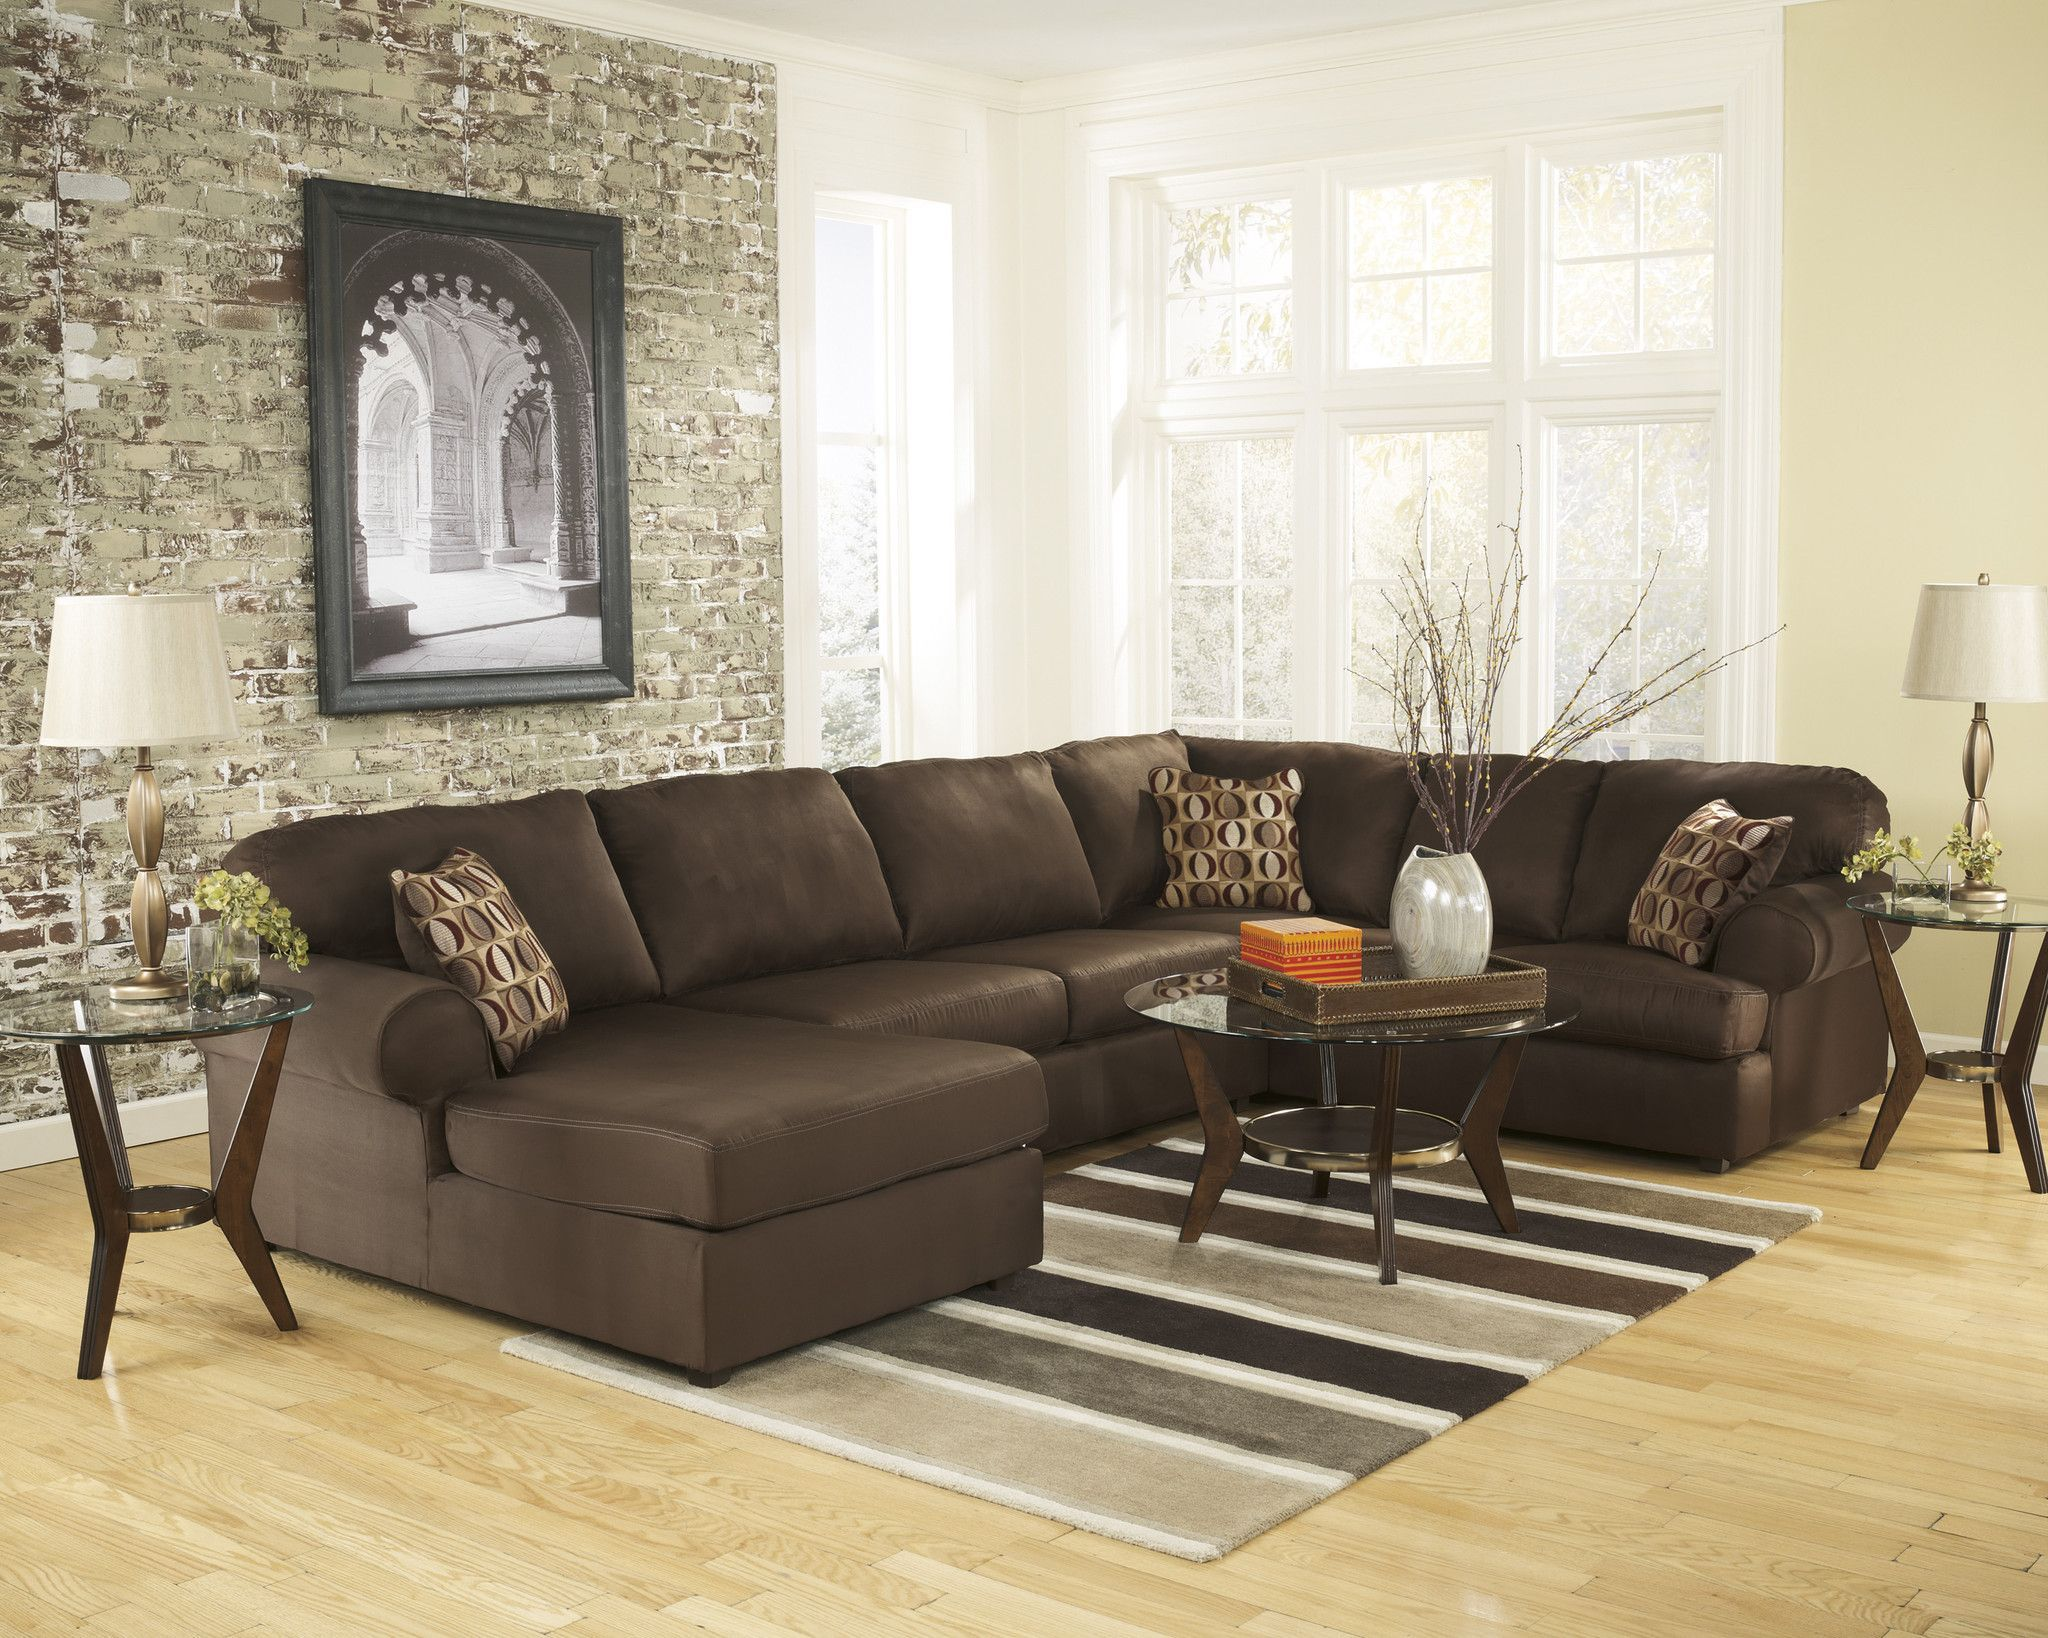 Cowan Sectional in Chocolate Products Pinterest